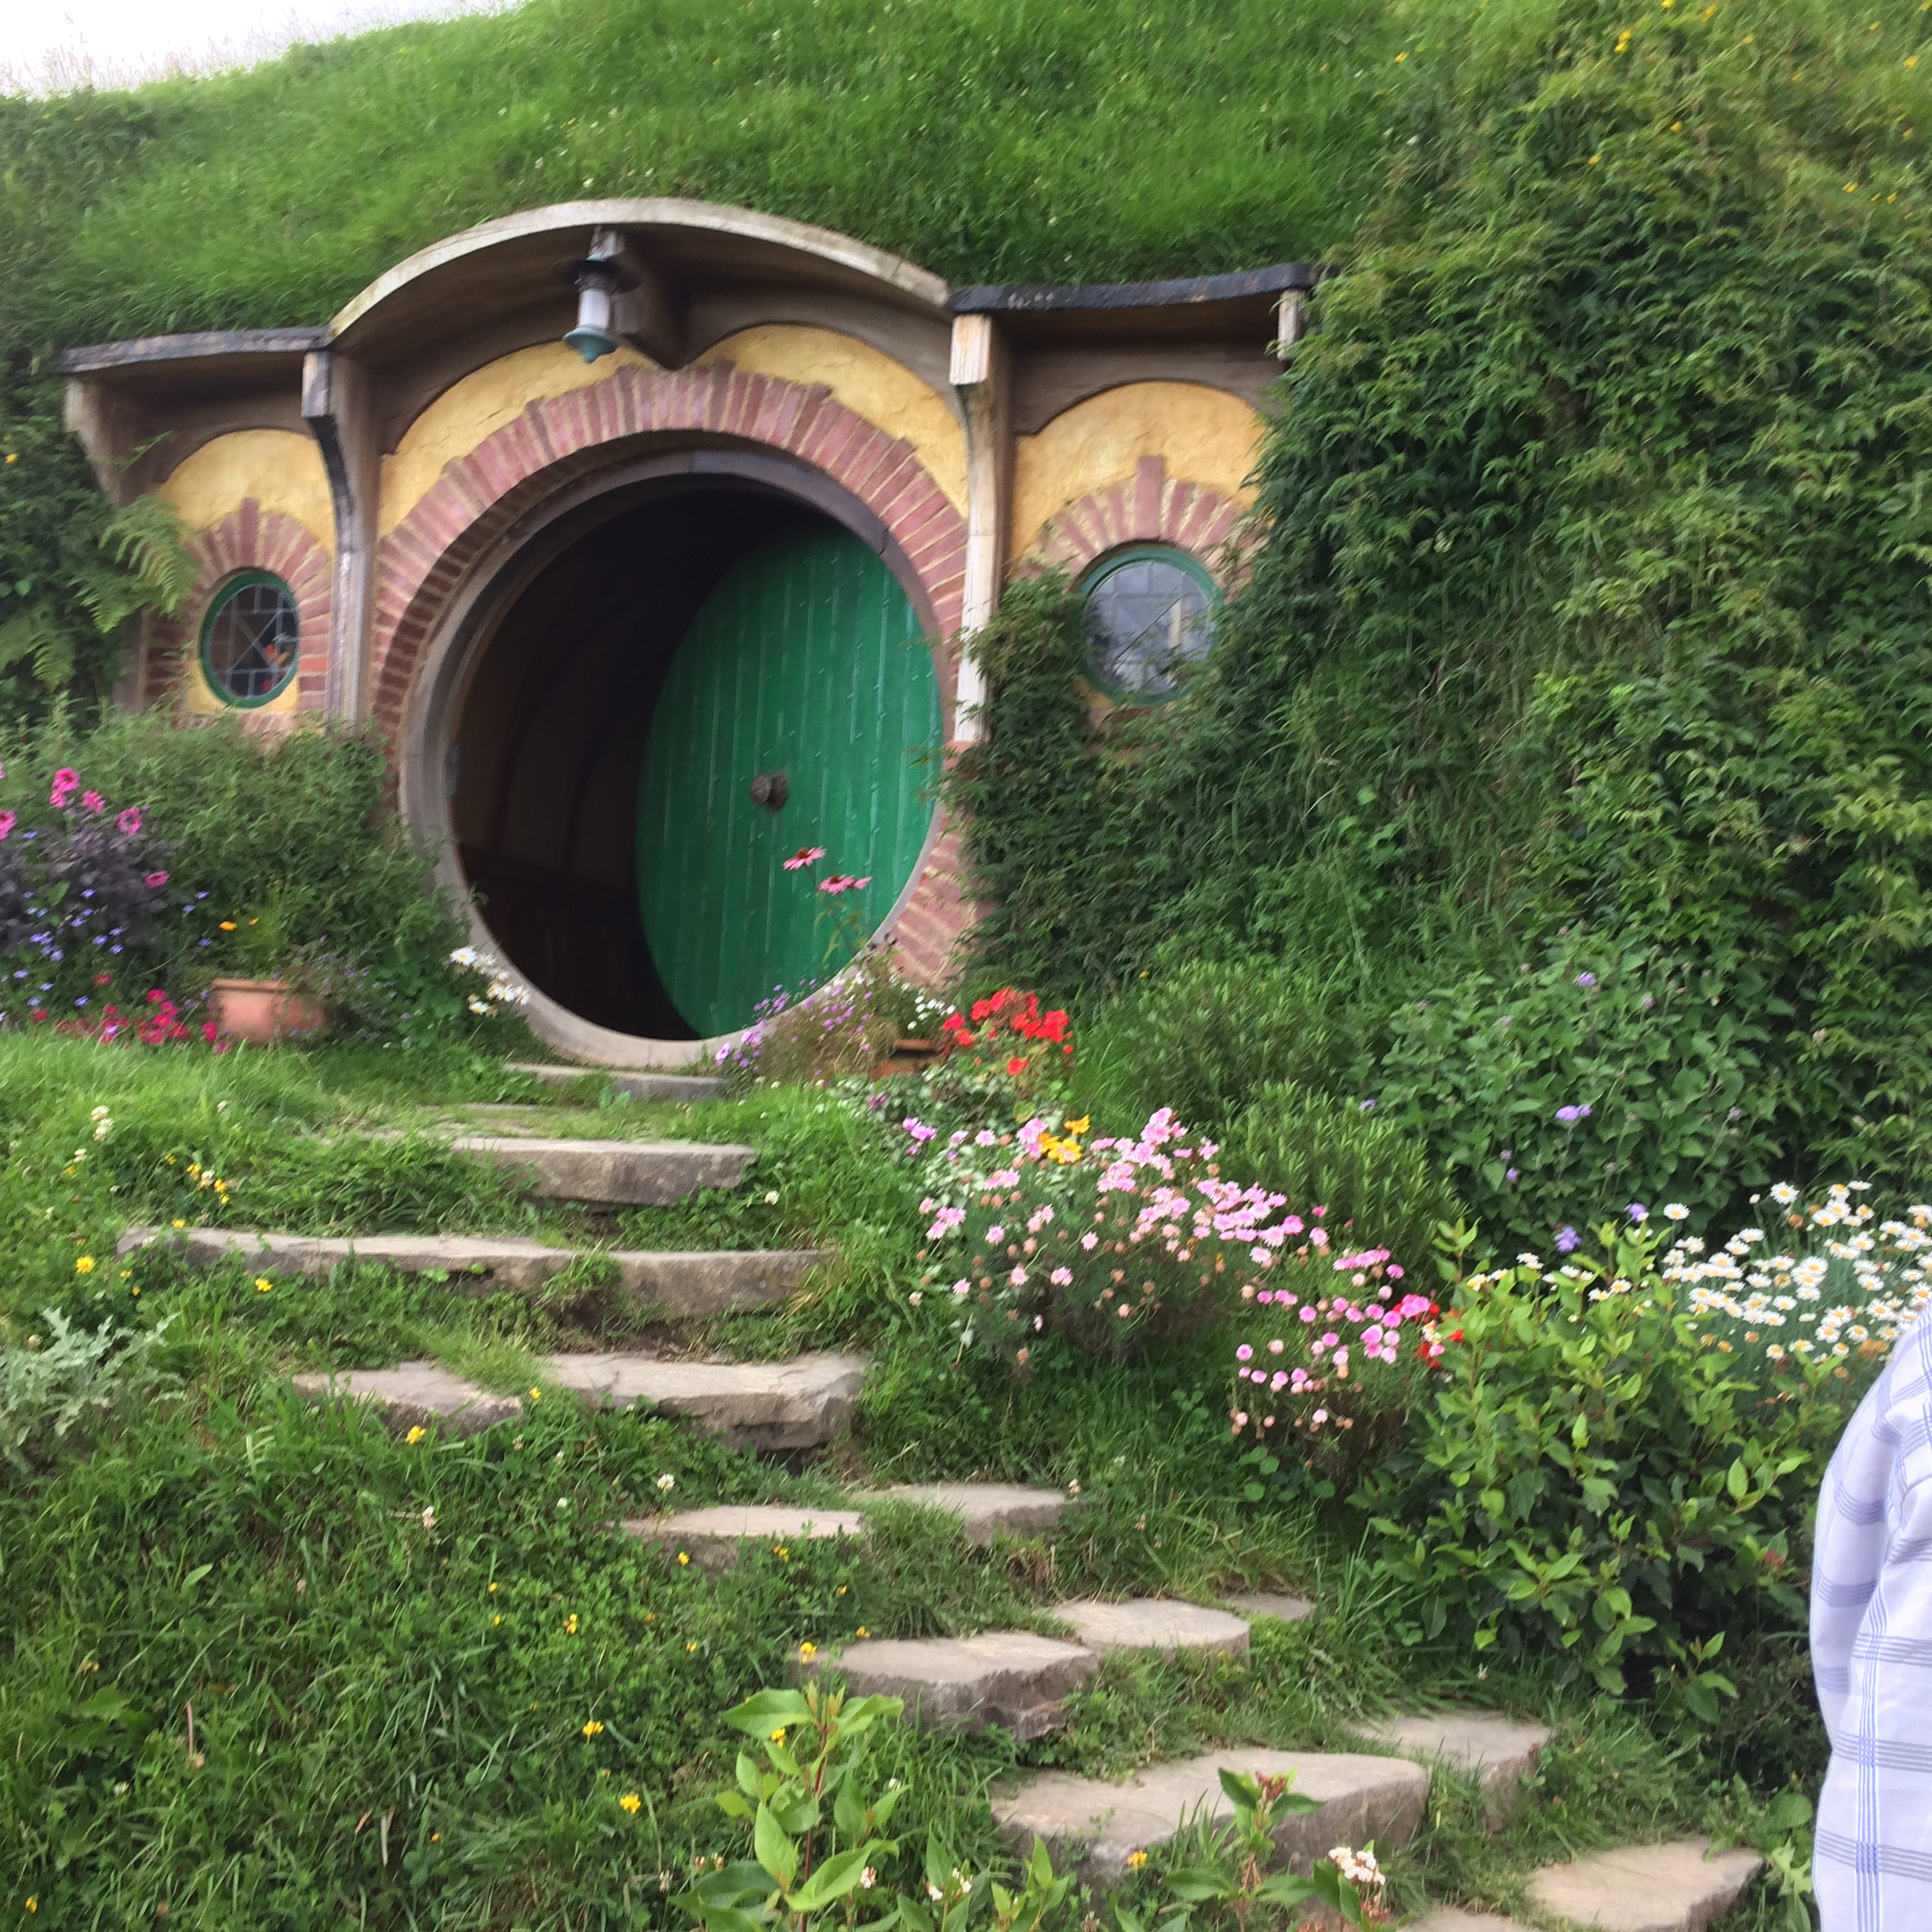 Back to Middle-Earth